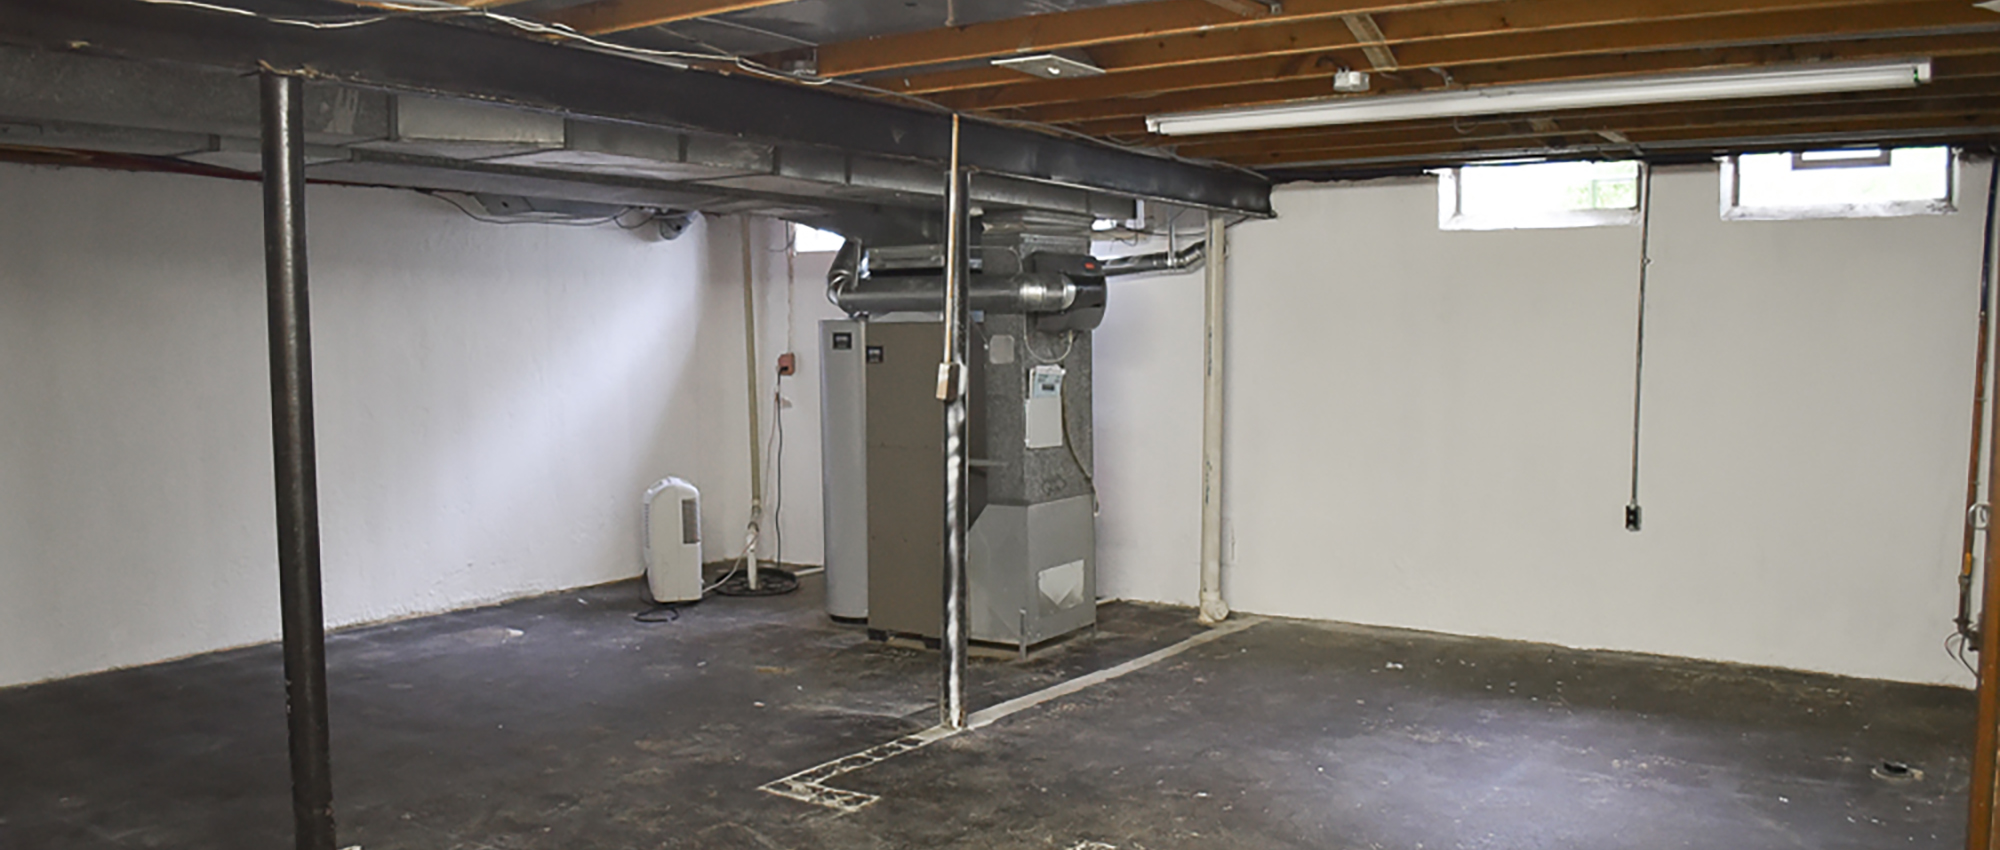 10 tips for a dry mold free basement nj for Dry basement